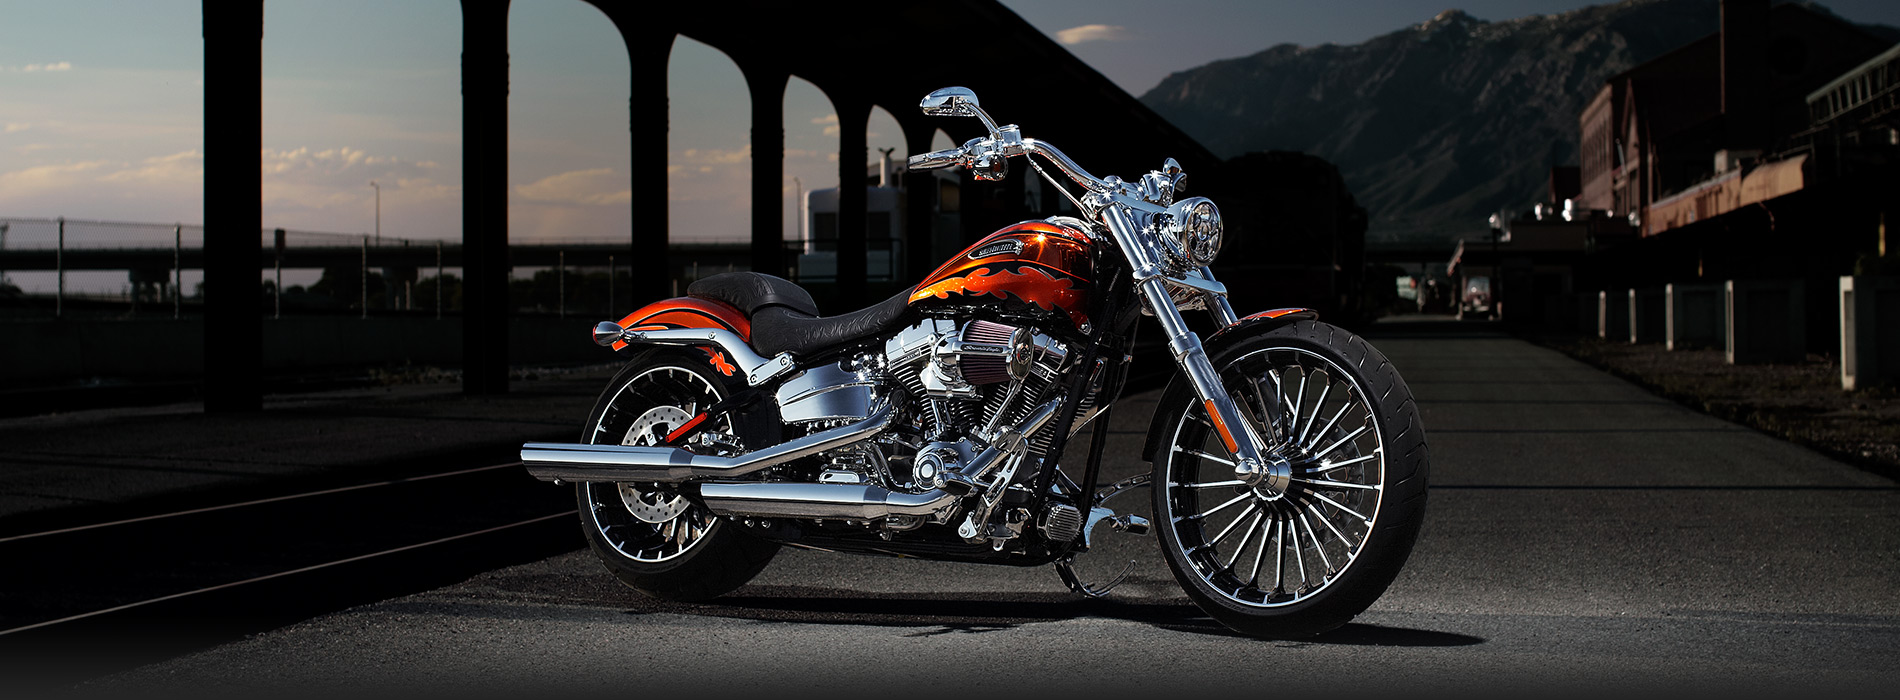 harley davidson softail breakout special edition 2014 2